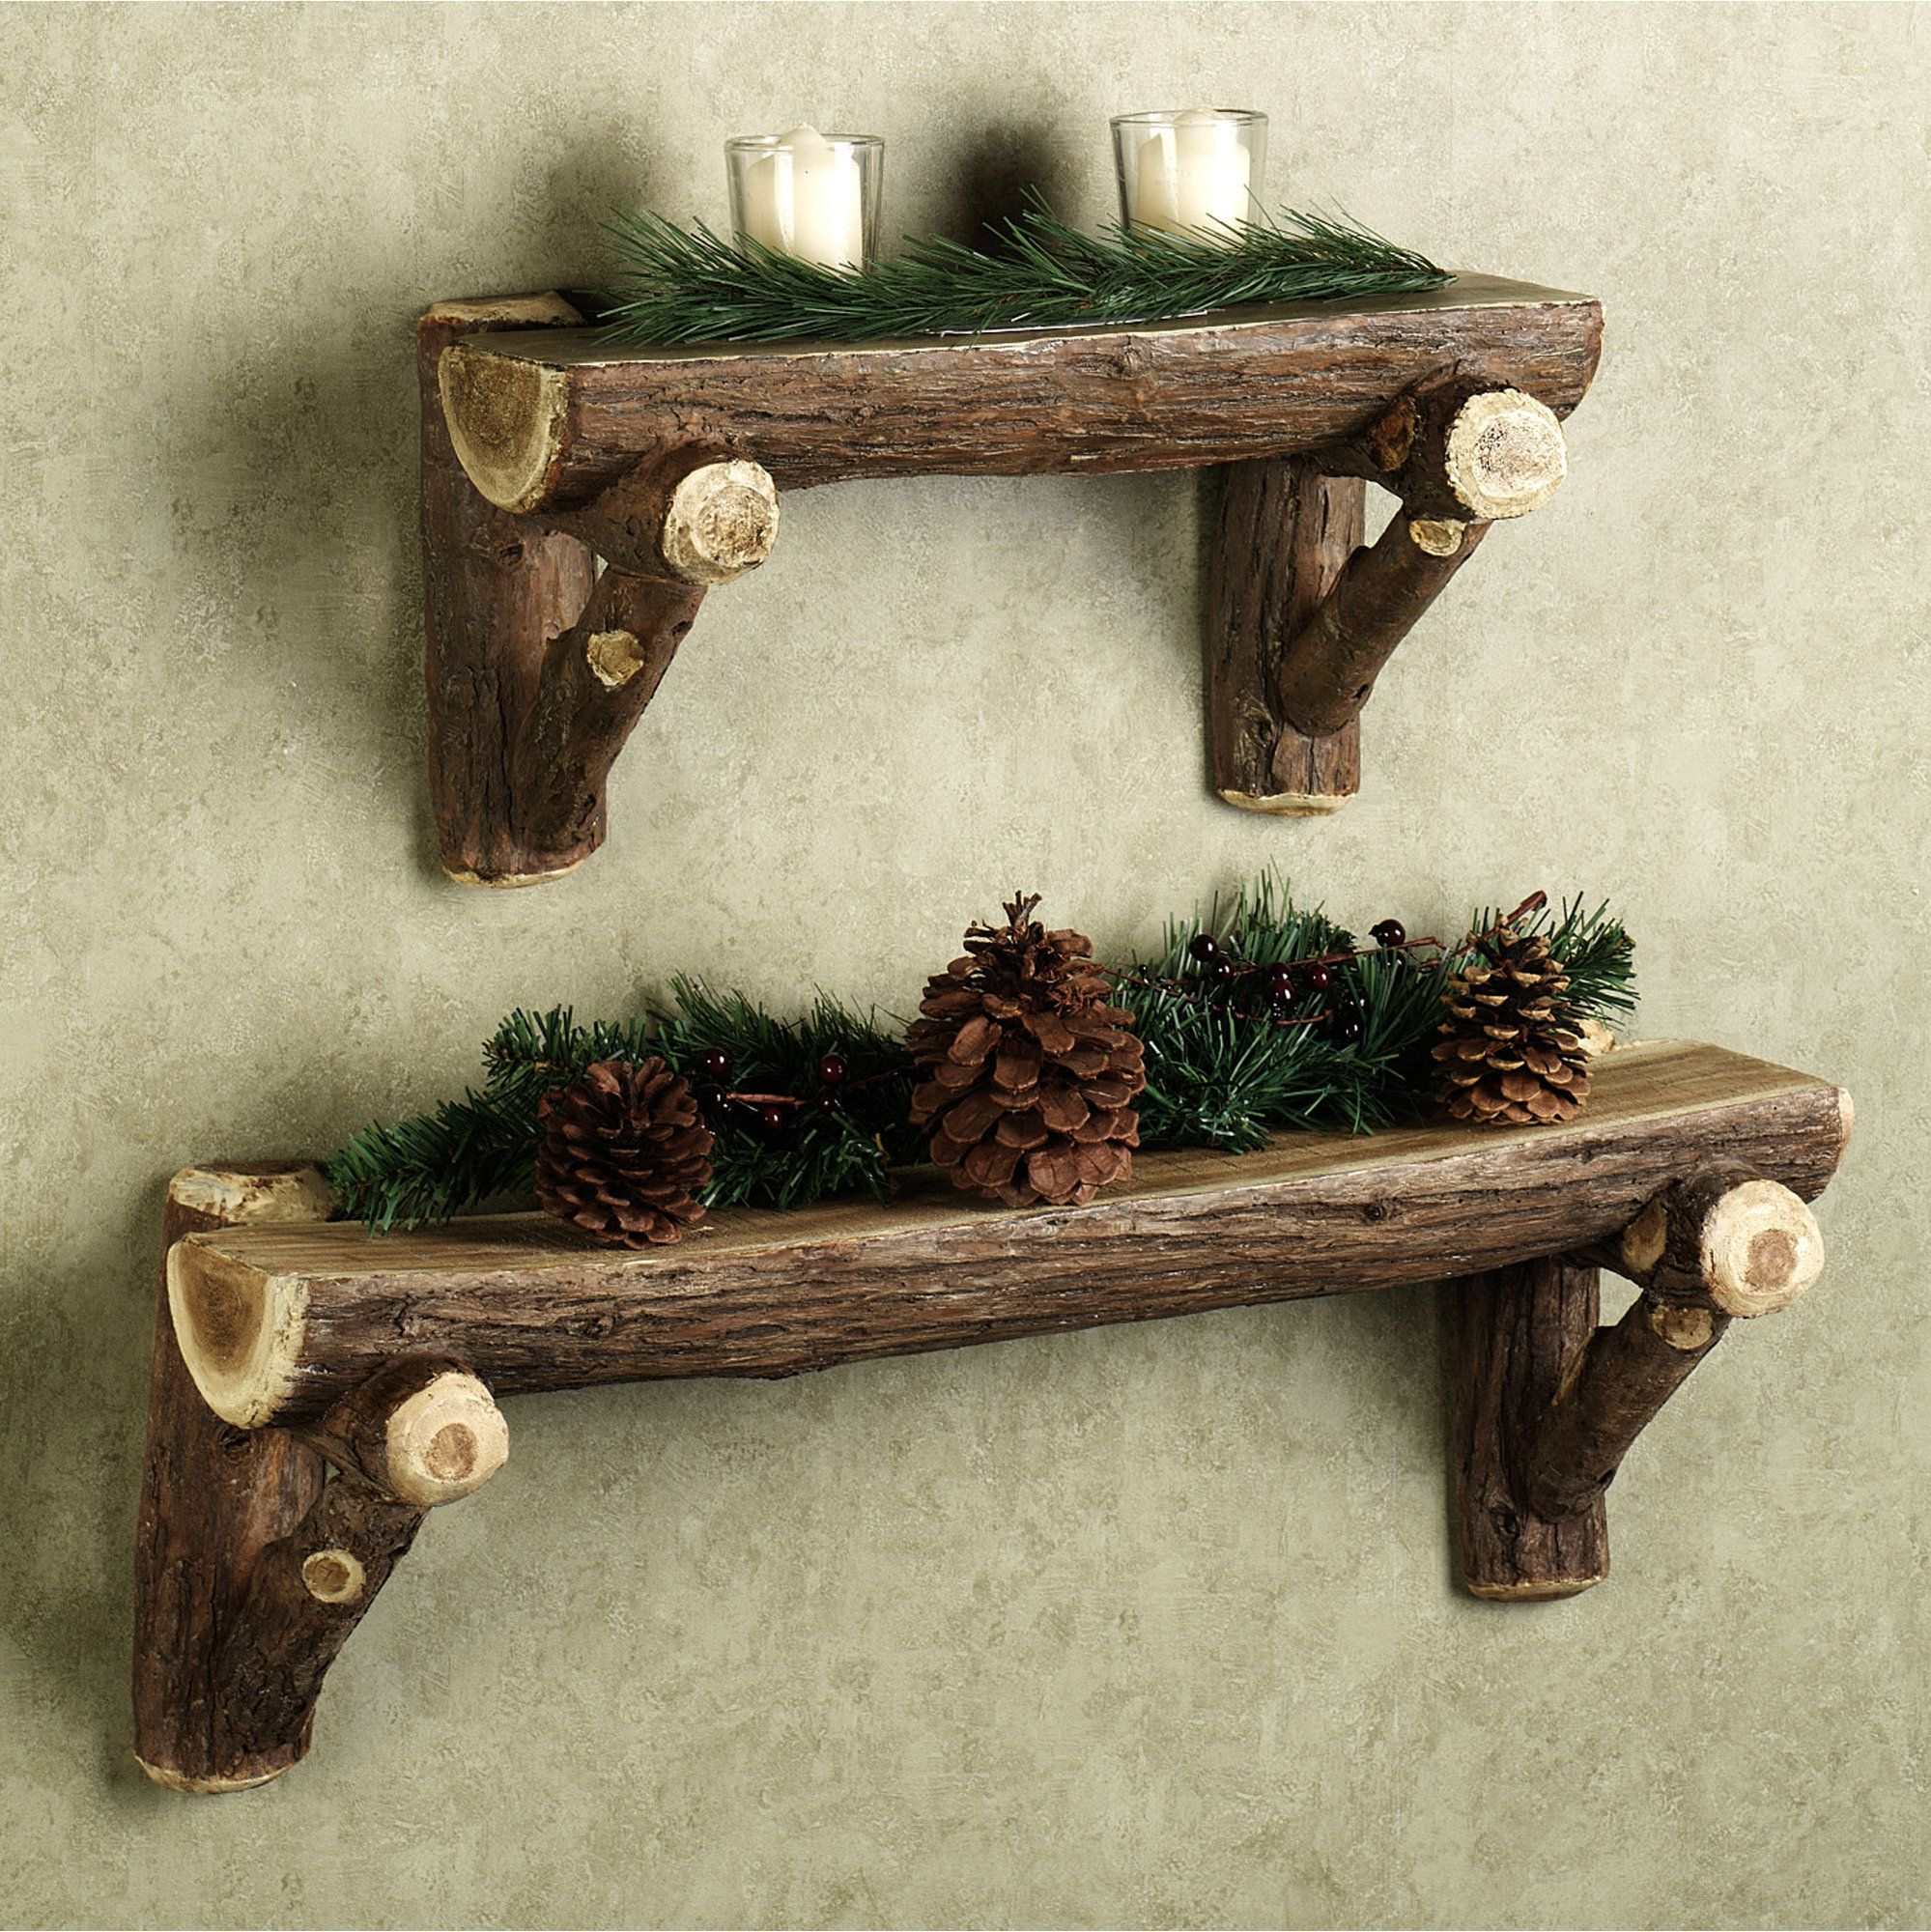 Shelves From Tree Branches Home Rustic Timber Log Wall Shelf Diy Wood Projects Cabin Decor Wood Diy